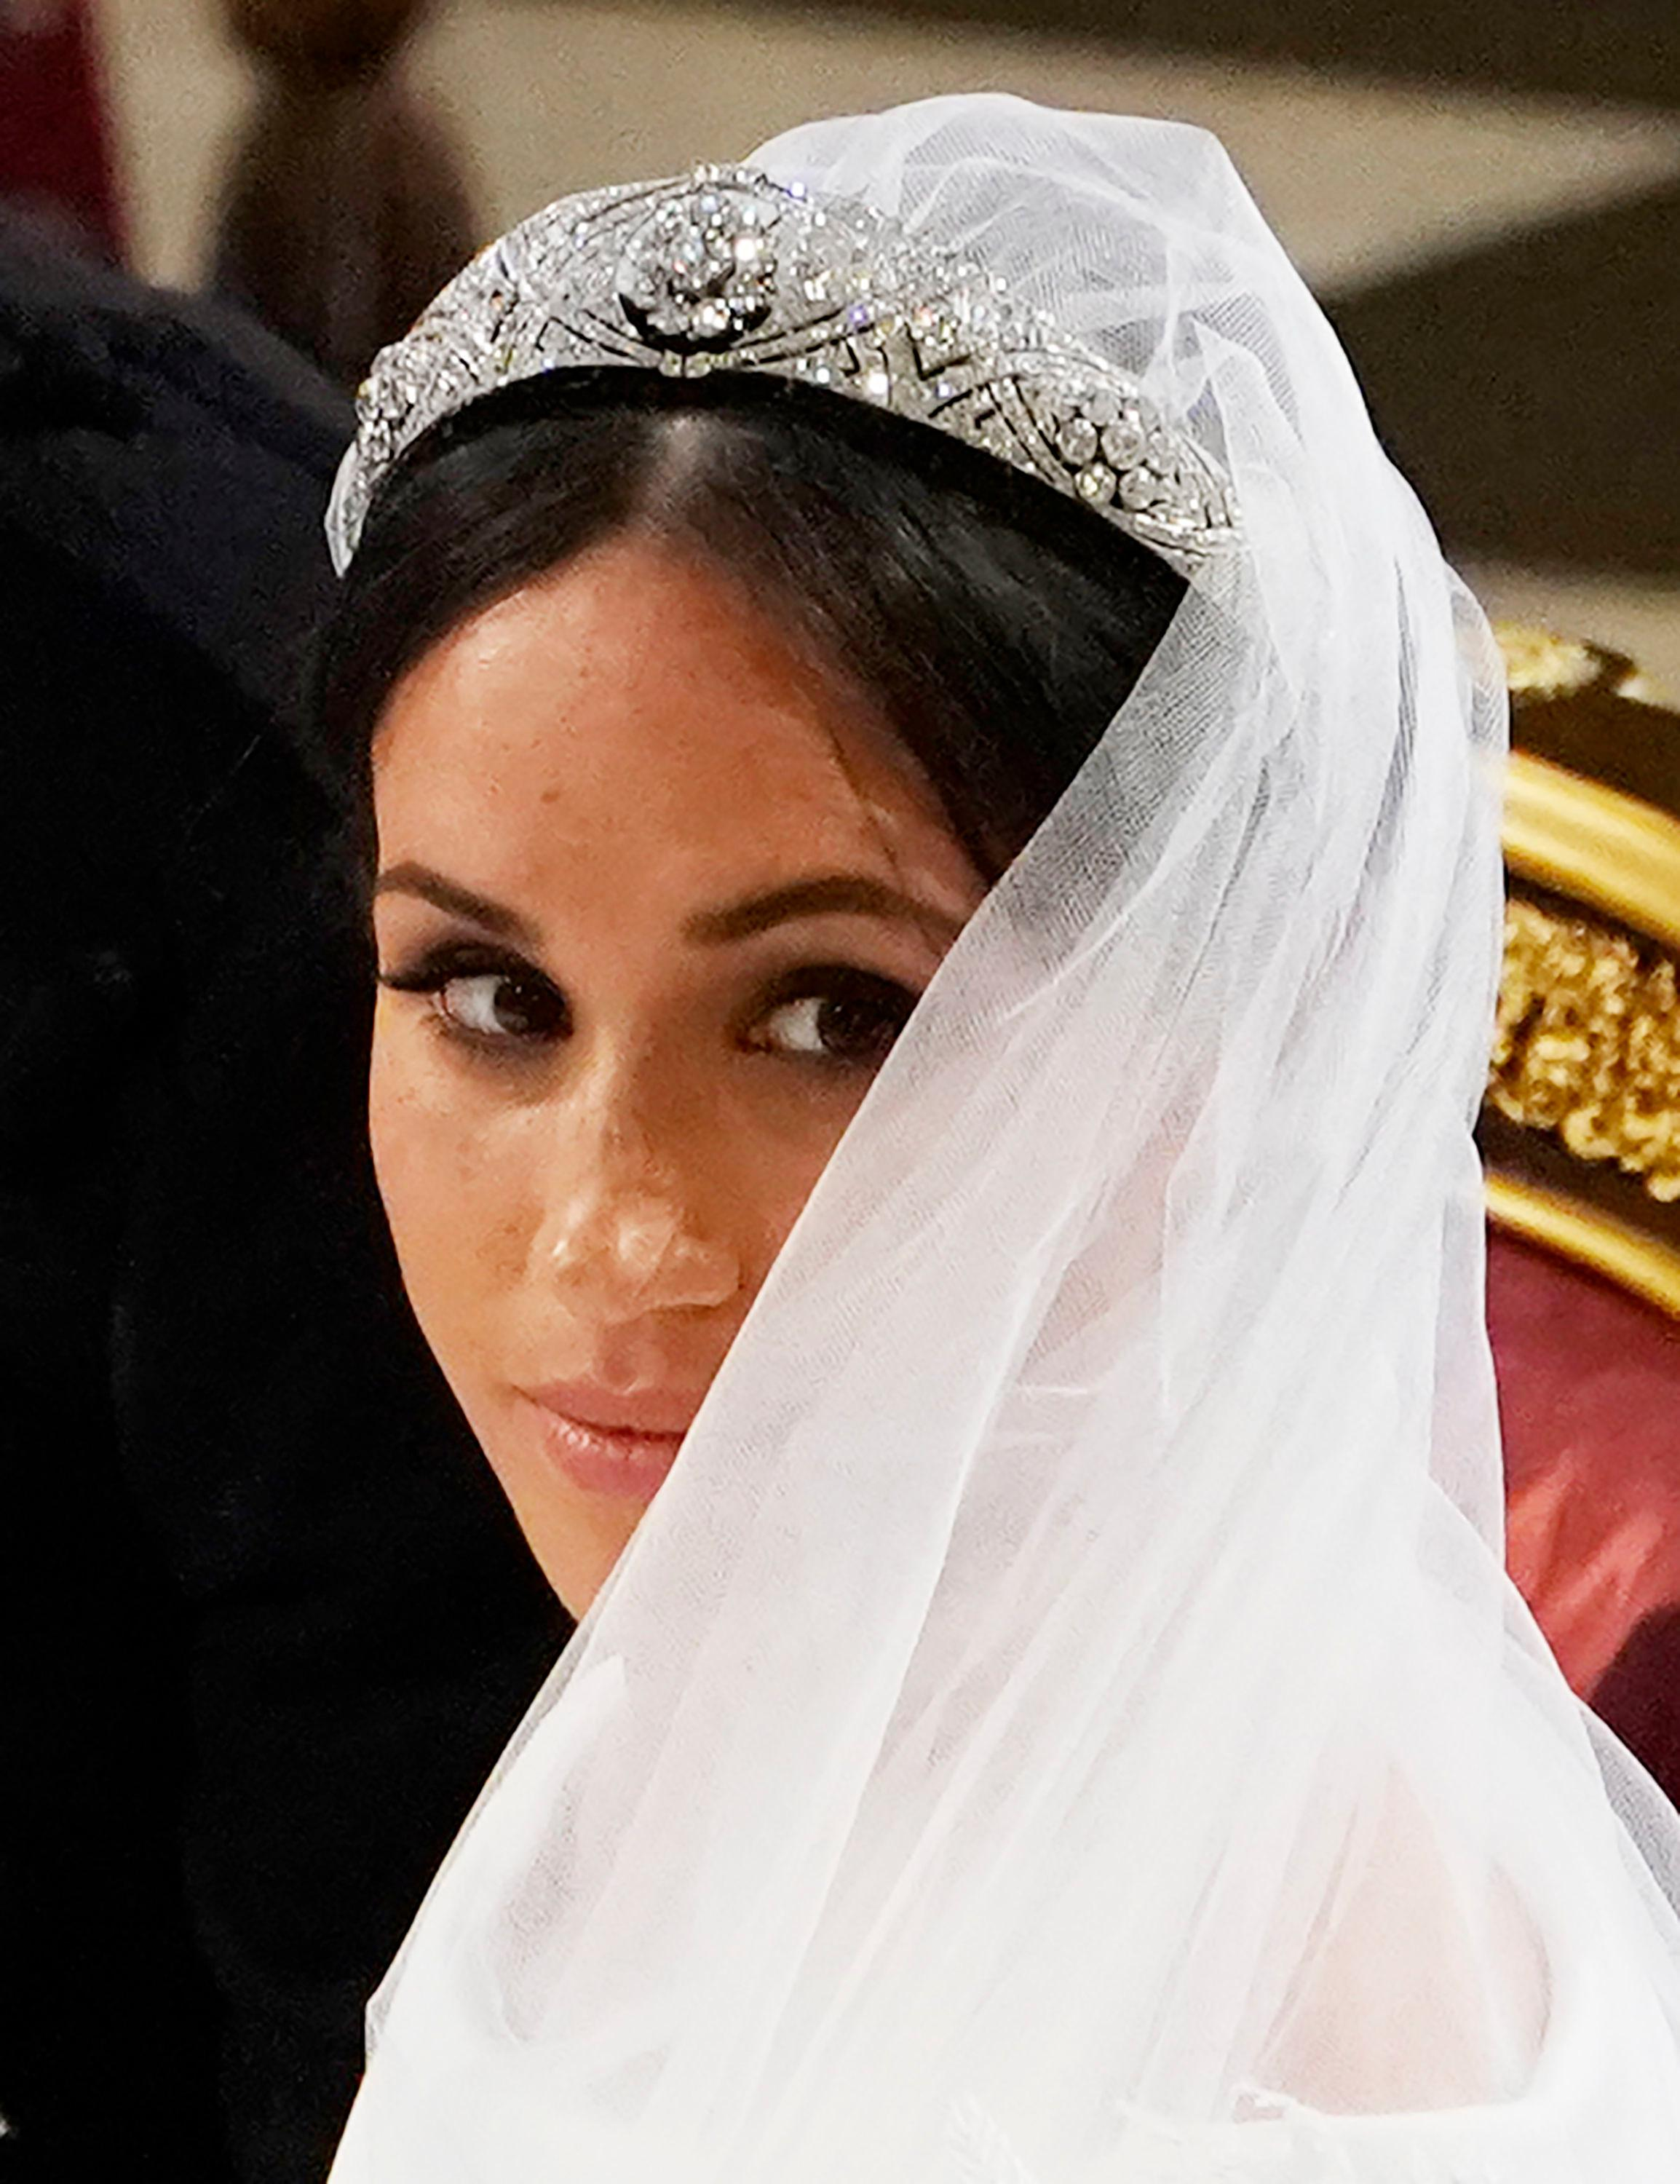 Meghan Markle during her wedding ceremony to Britain's Prince Harry at St. George's Chapel in Windsor Castle in Windsor, near London, England, Saturday, May 19, 2018. (Owen Humphreys/pool photo via AP)